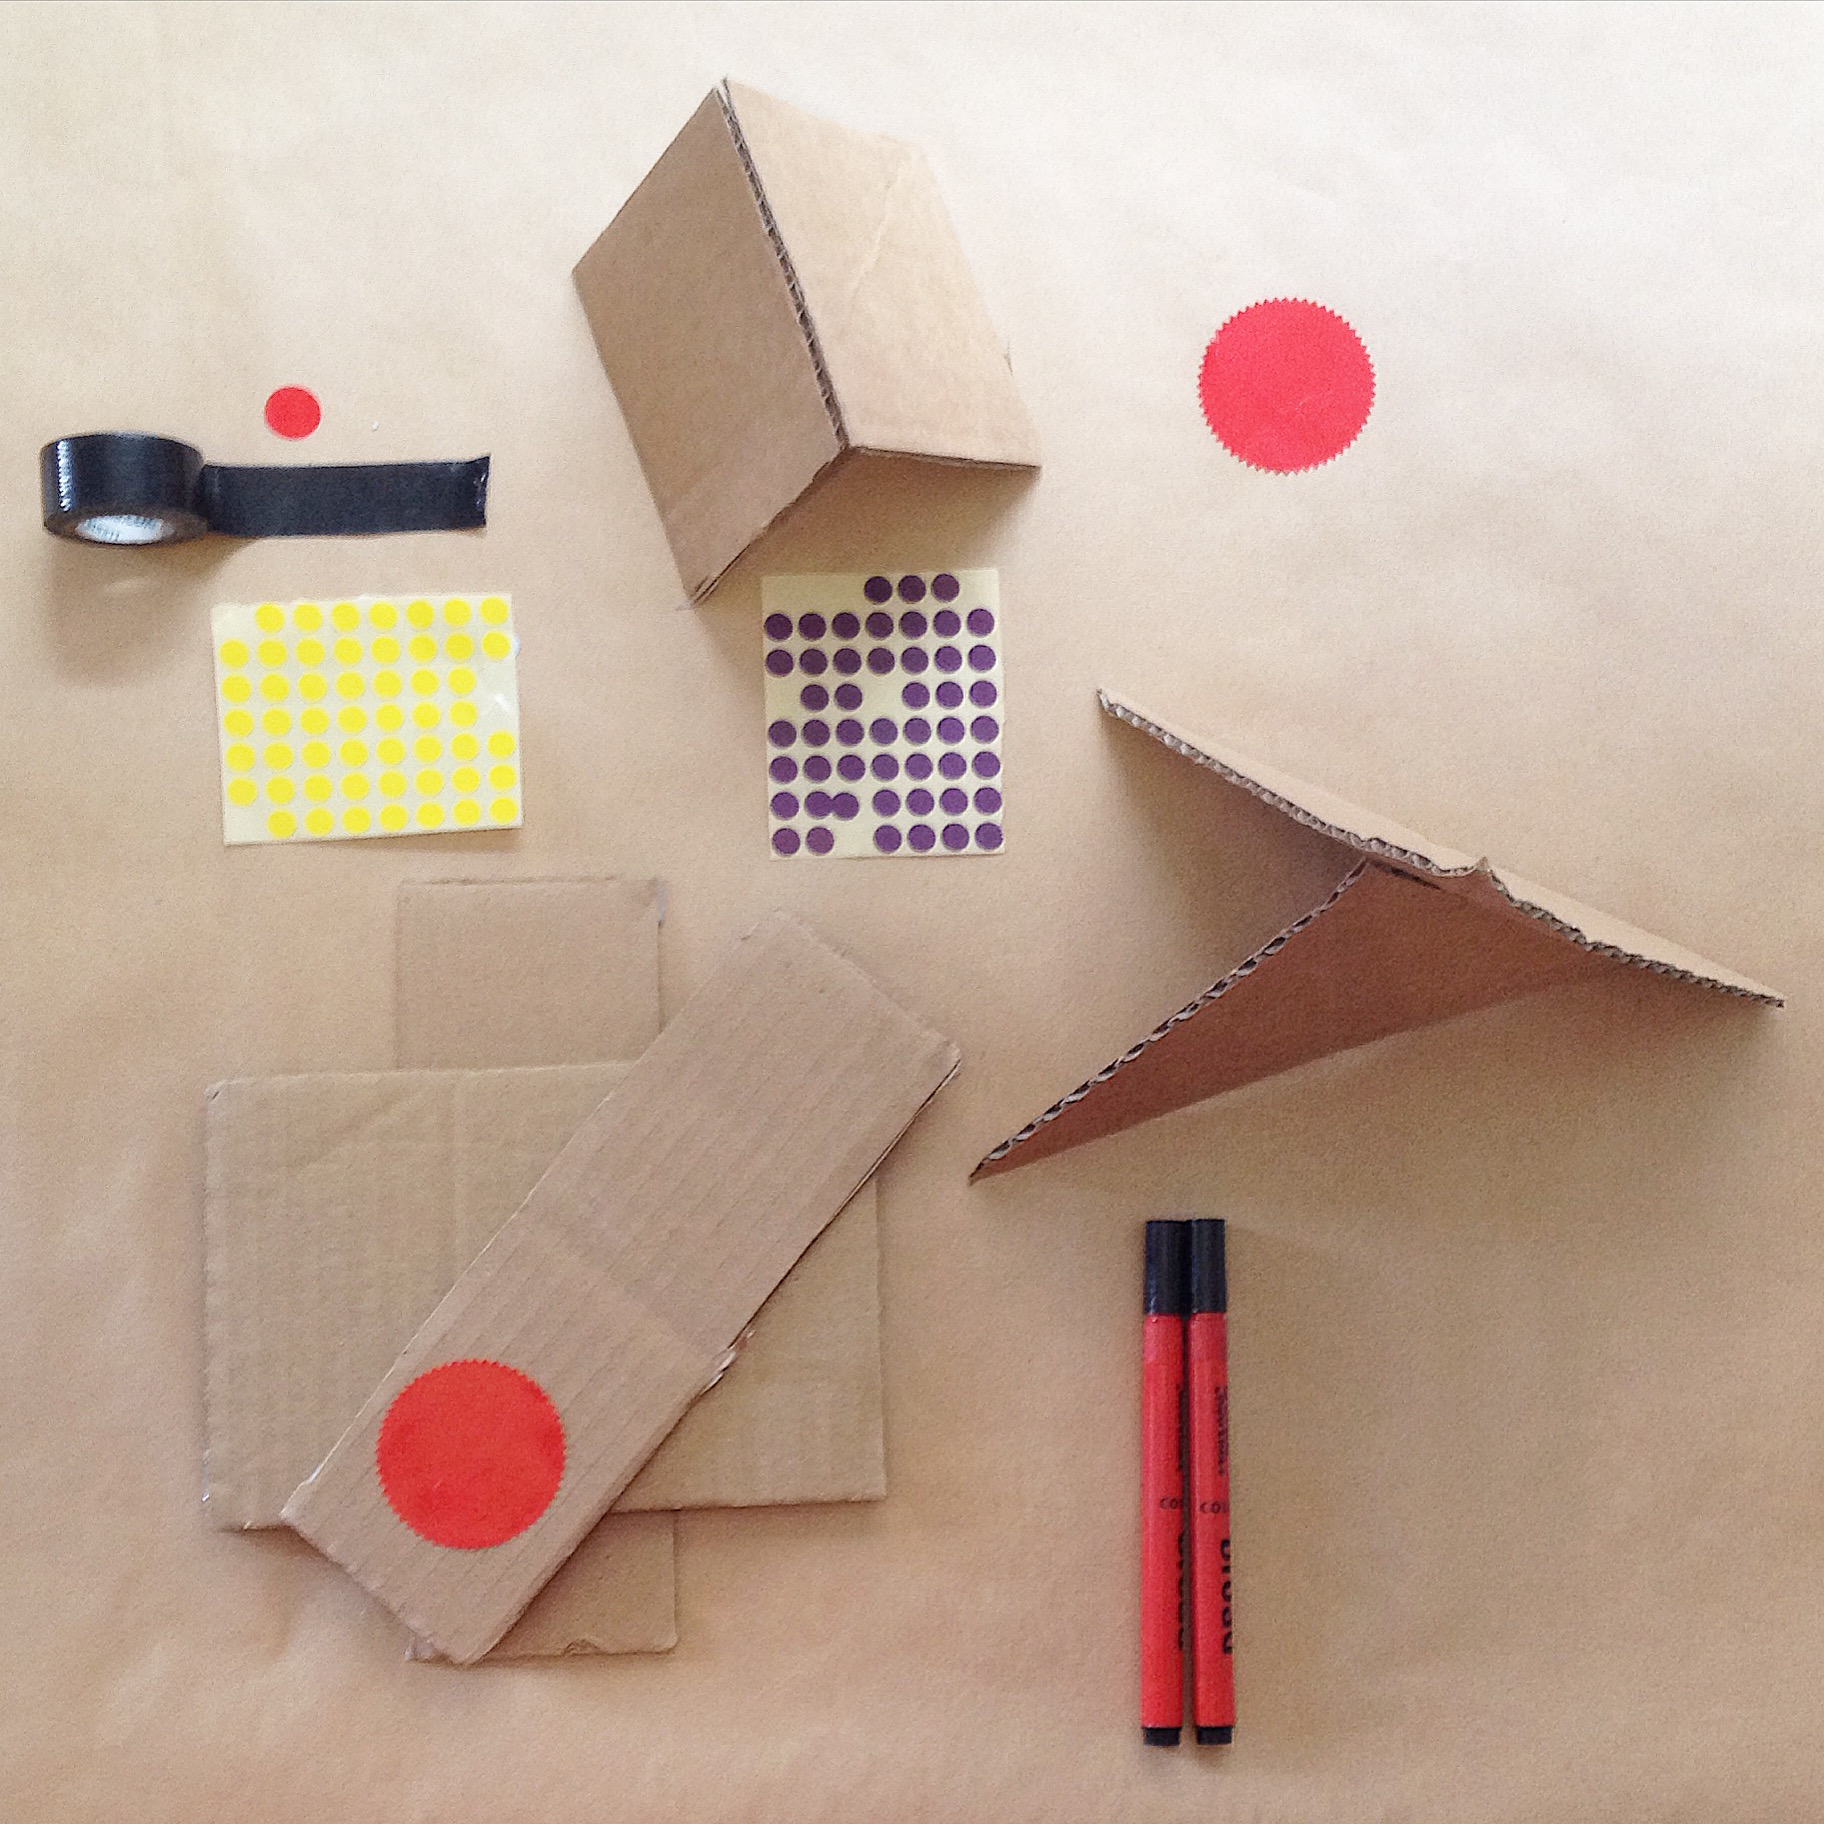 2. Cardboard, tape, stickers, pens.JPG